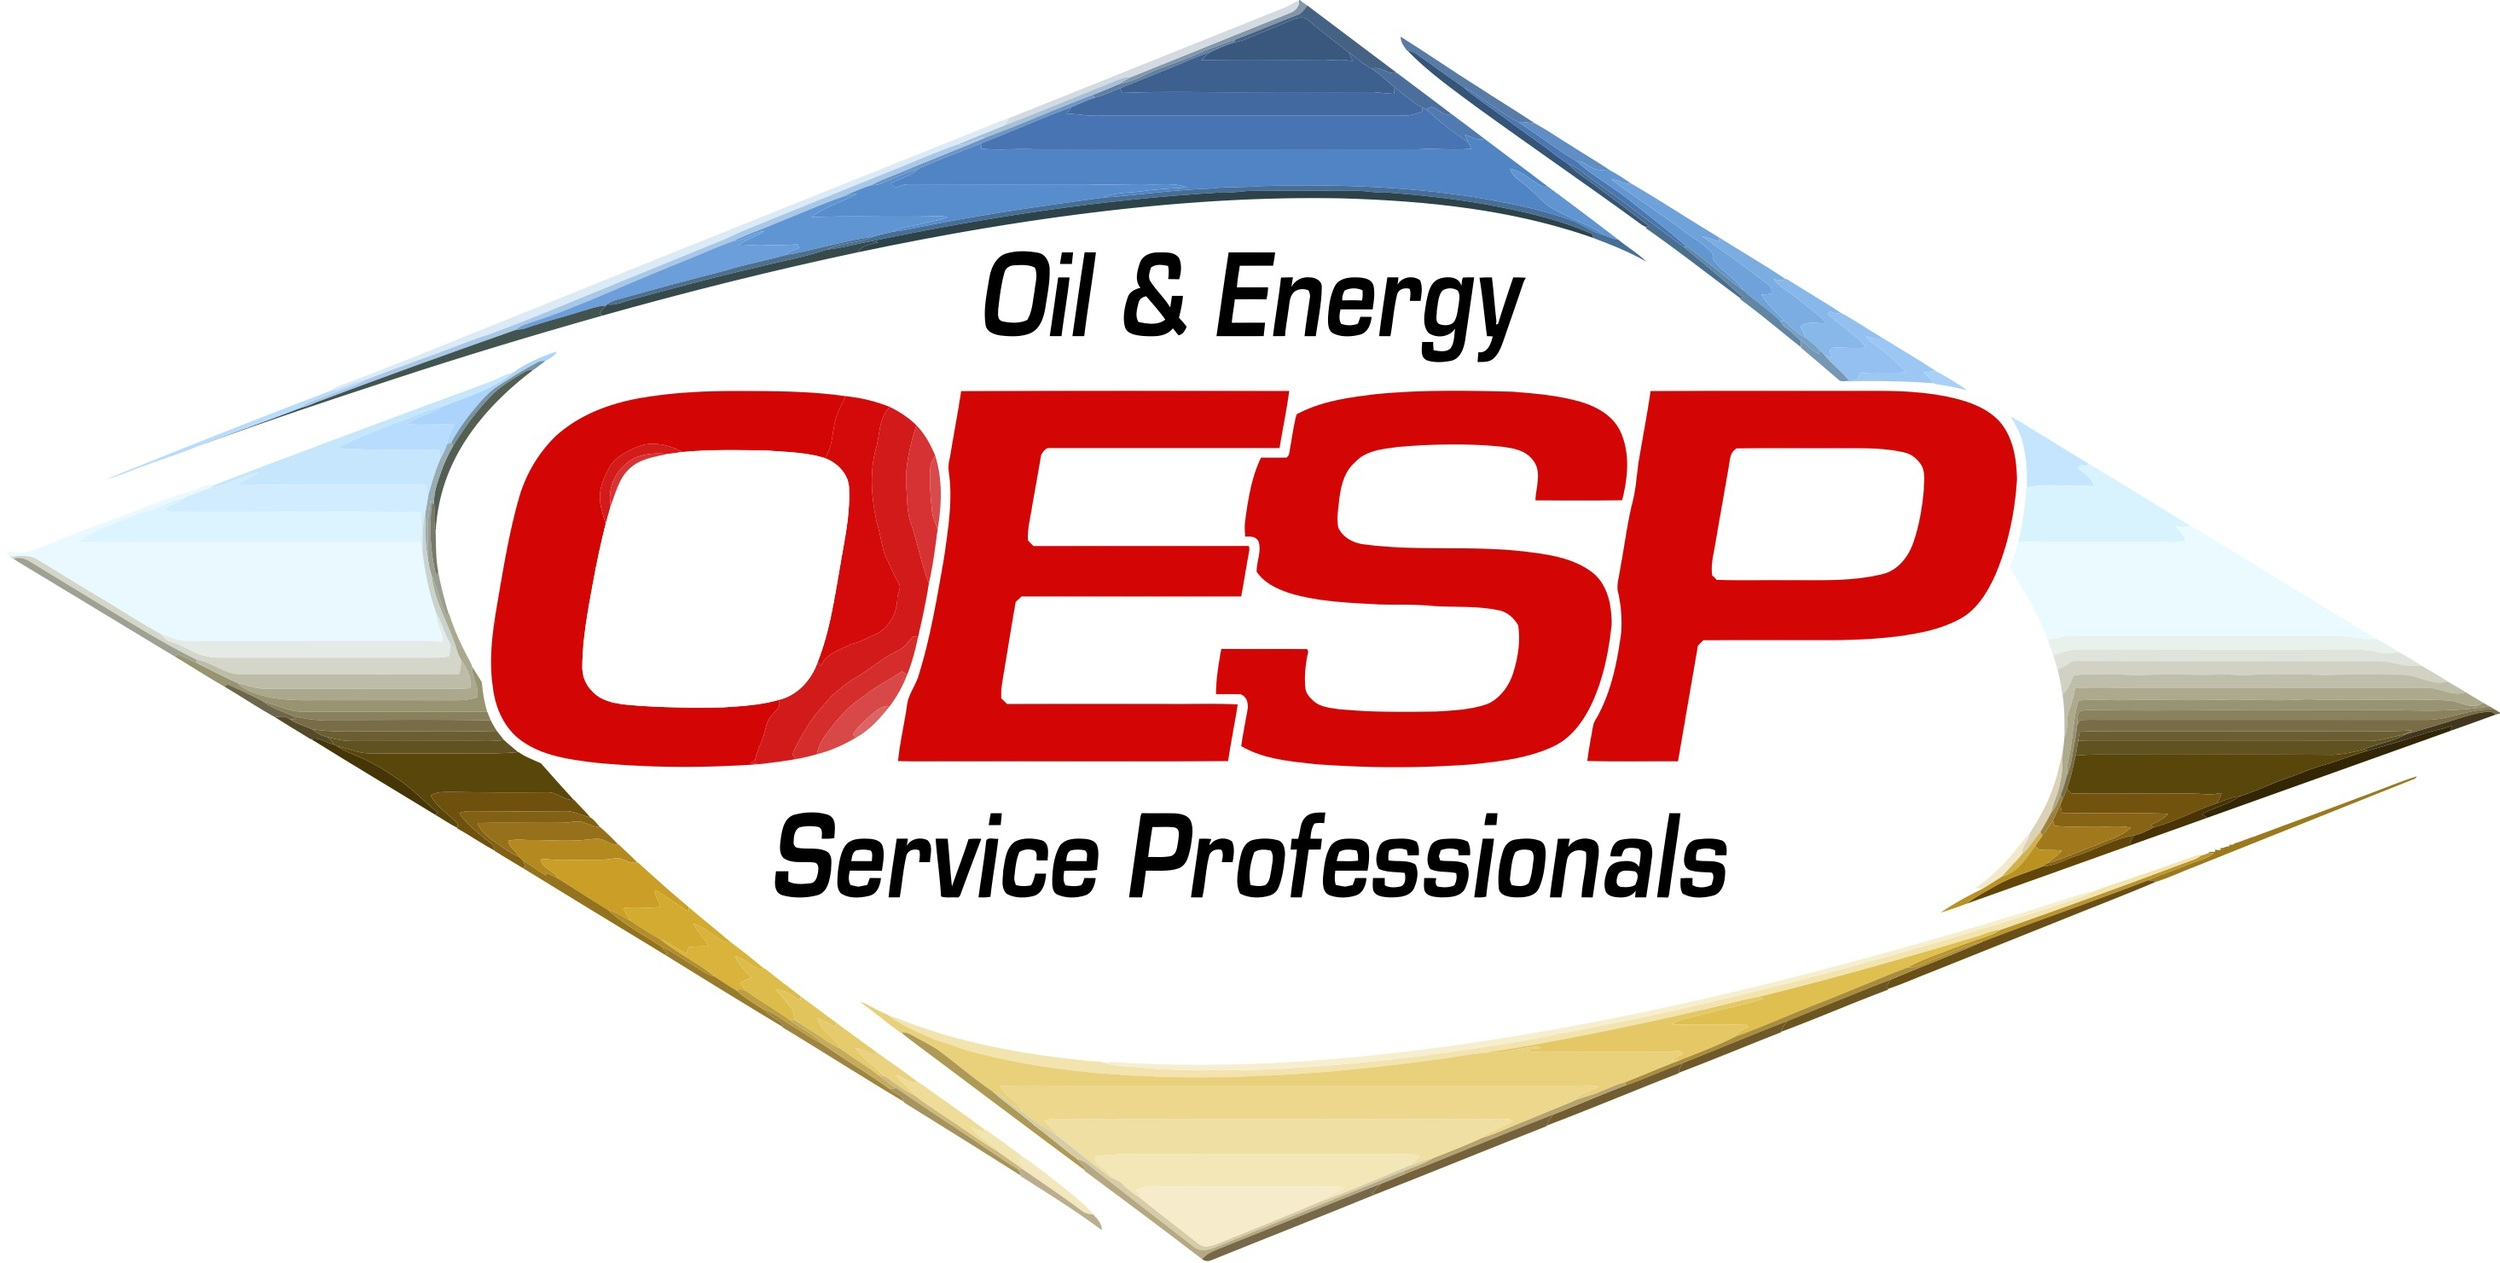 National association of oil and energy service professionals